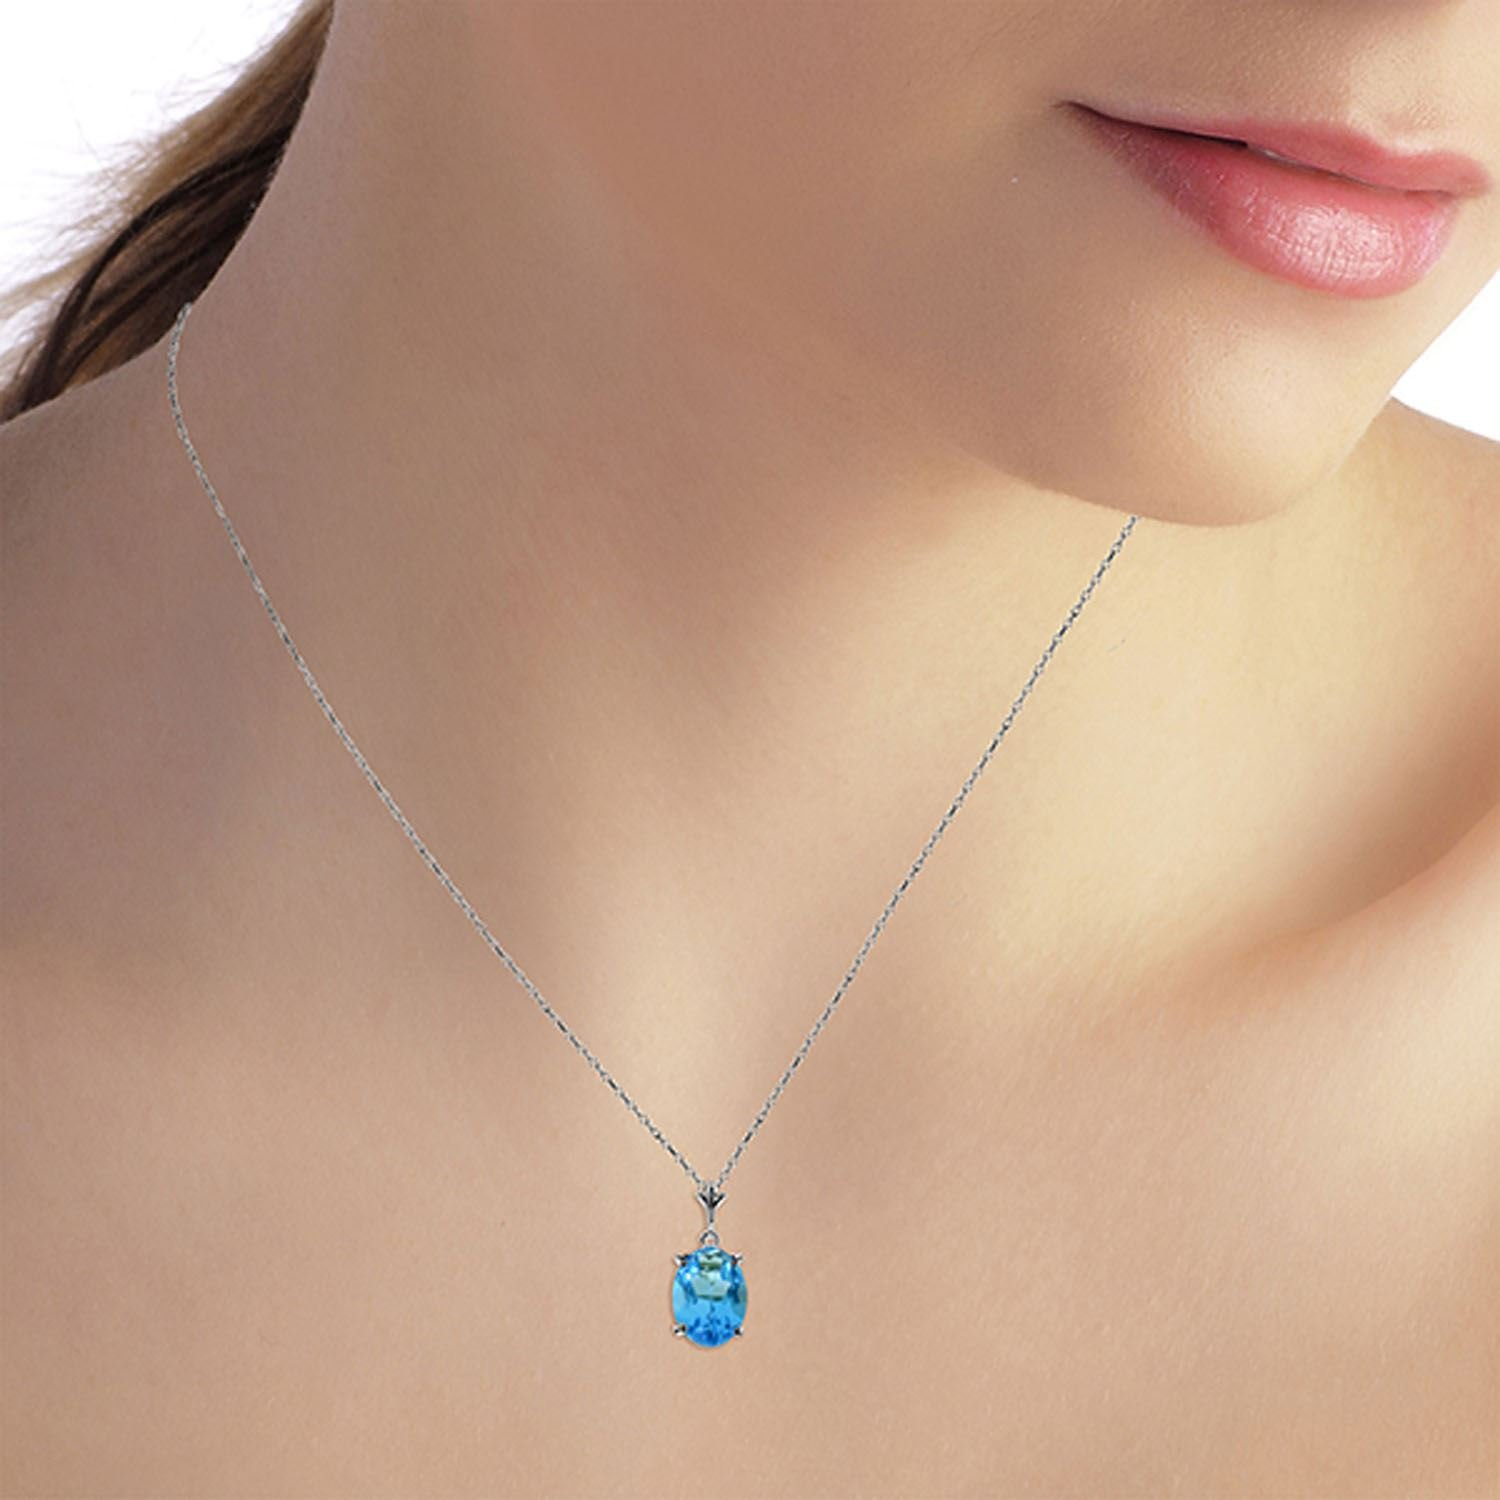 ALARRI 3.12 Carat 14K Solid White Gold Here I Stand Blue Topaz Necklace with 24 Inch Chain Length